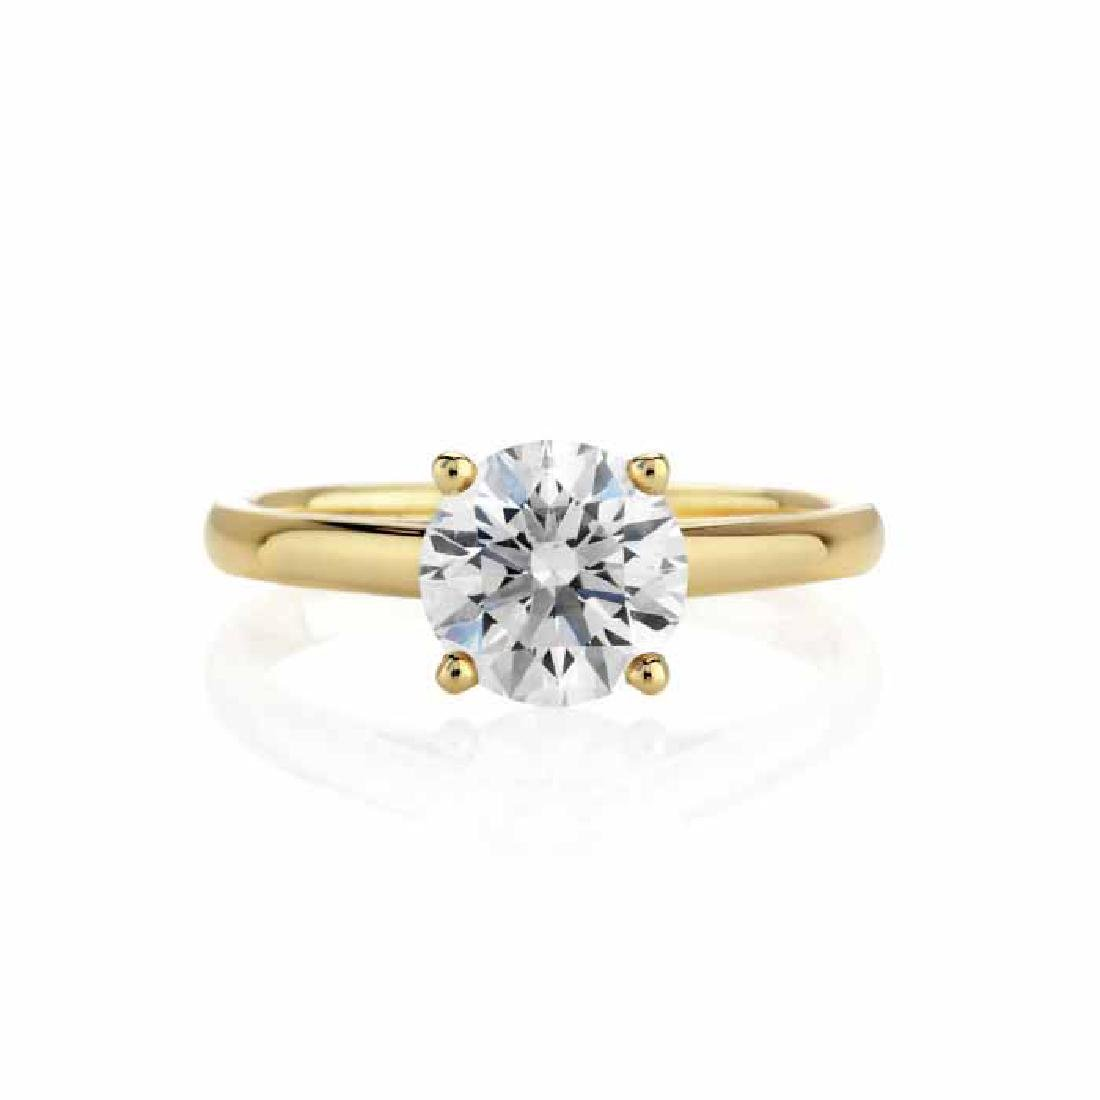 CERTIFIED 1.01 CTW F/SI1 ROUND DIAMOND SOLITAIRE RING I